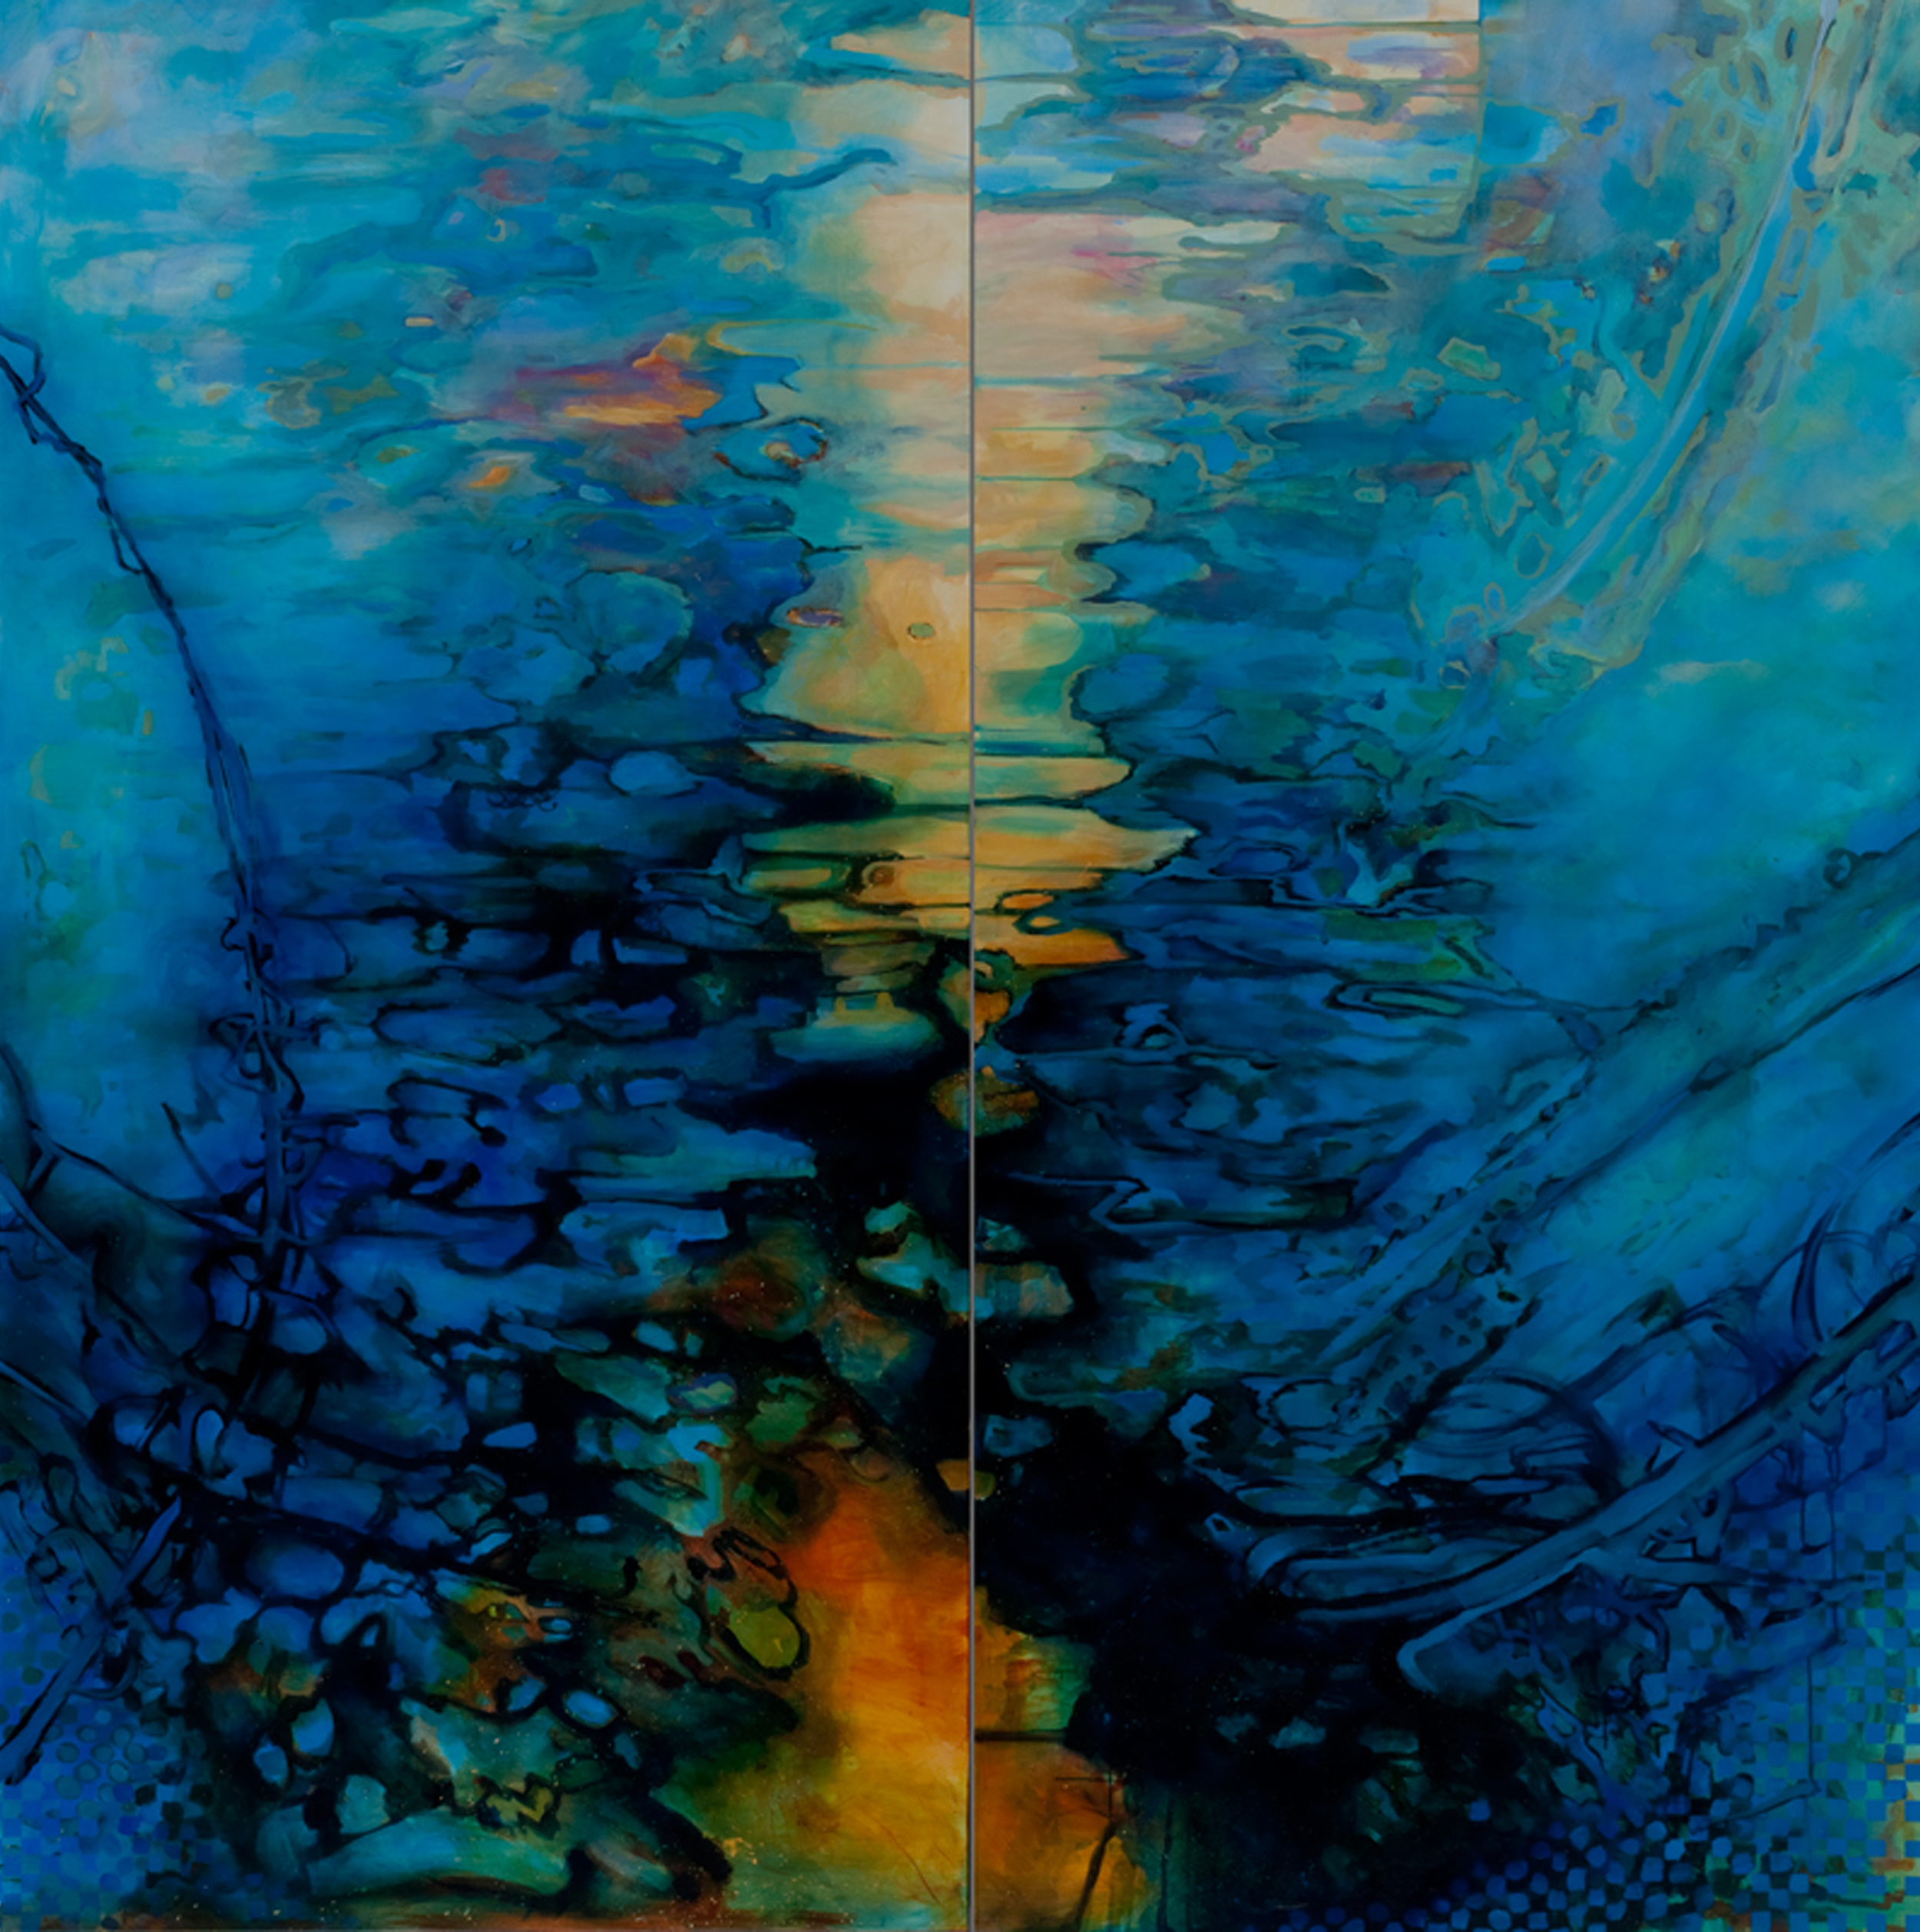 Tropos (Panel 7-8), Tropos, Acrylic on Canvas, 8' by 48', 2011